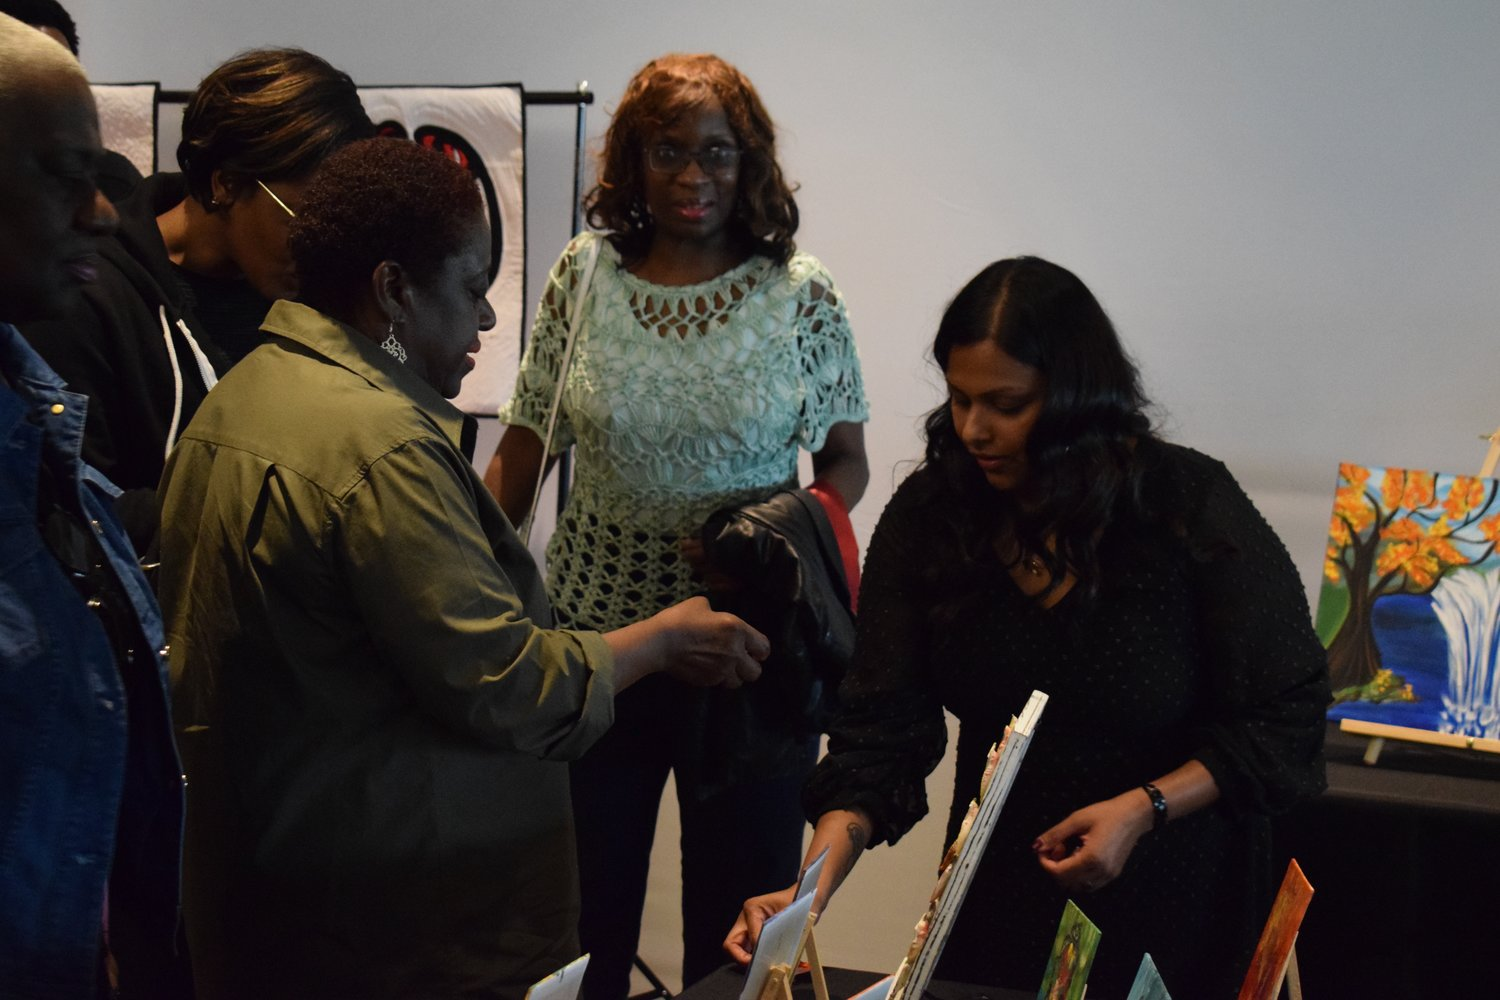 Elmont's Ann Robert, right, sold some of her artwork to residents at the Elmont Art Gallery on May 8.